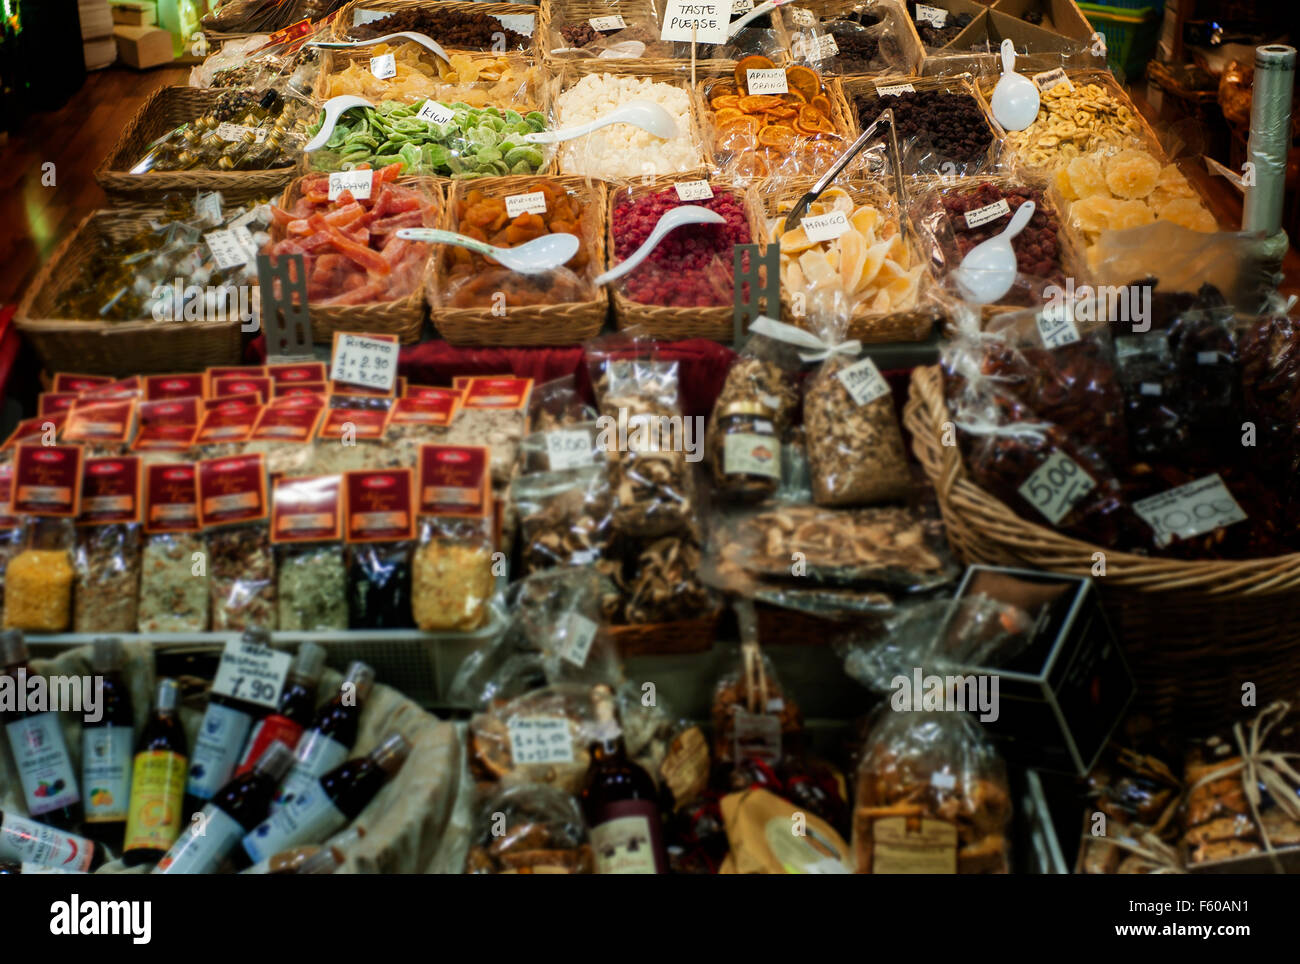 Dried foods,herb and spice shop display Florence Mercato Centrale central market Italy - Stock Image